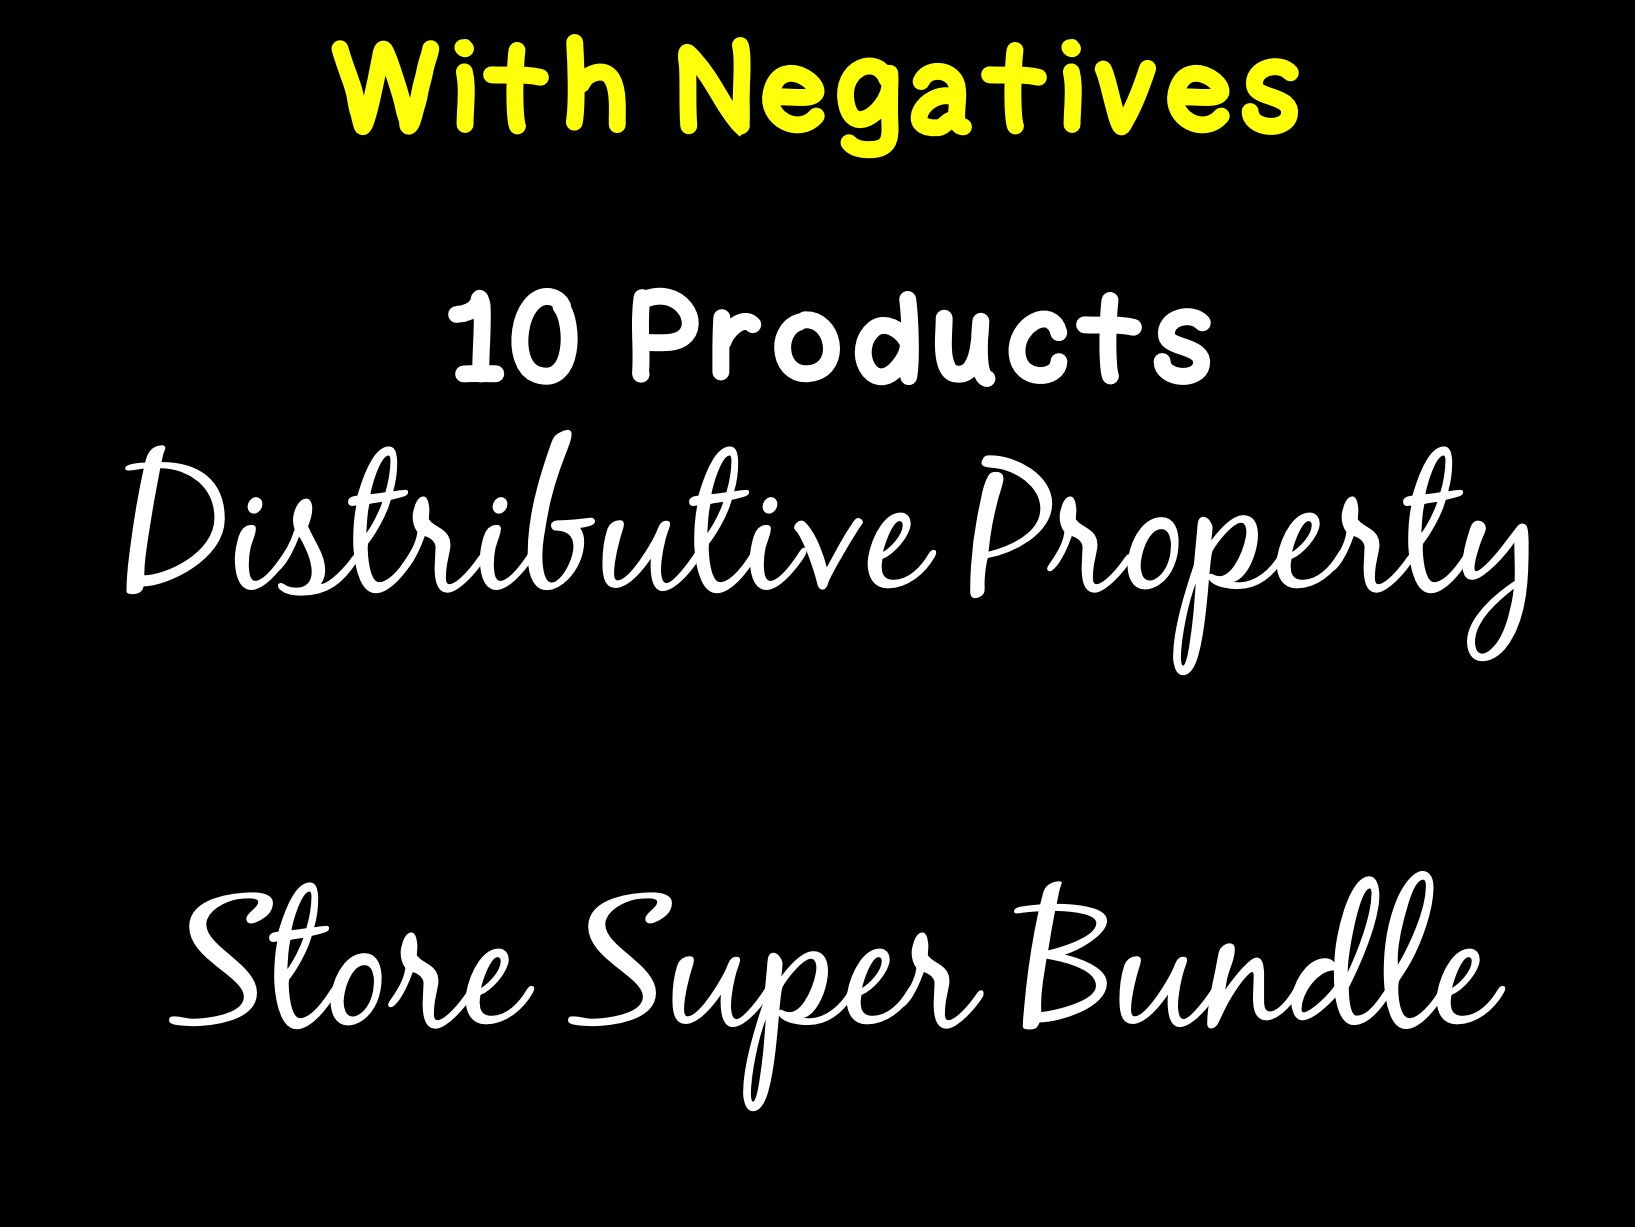 Distributive Property With Negatives Super Store Bundle